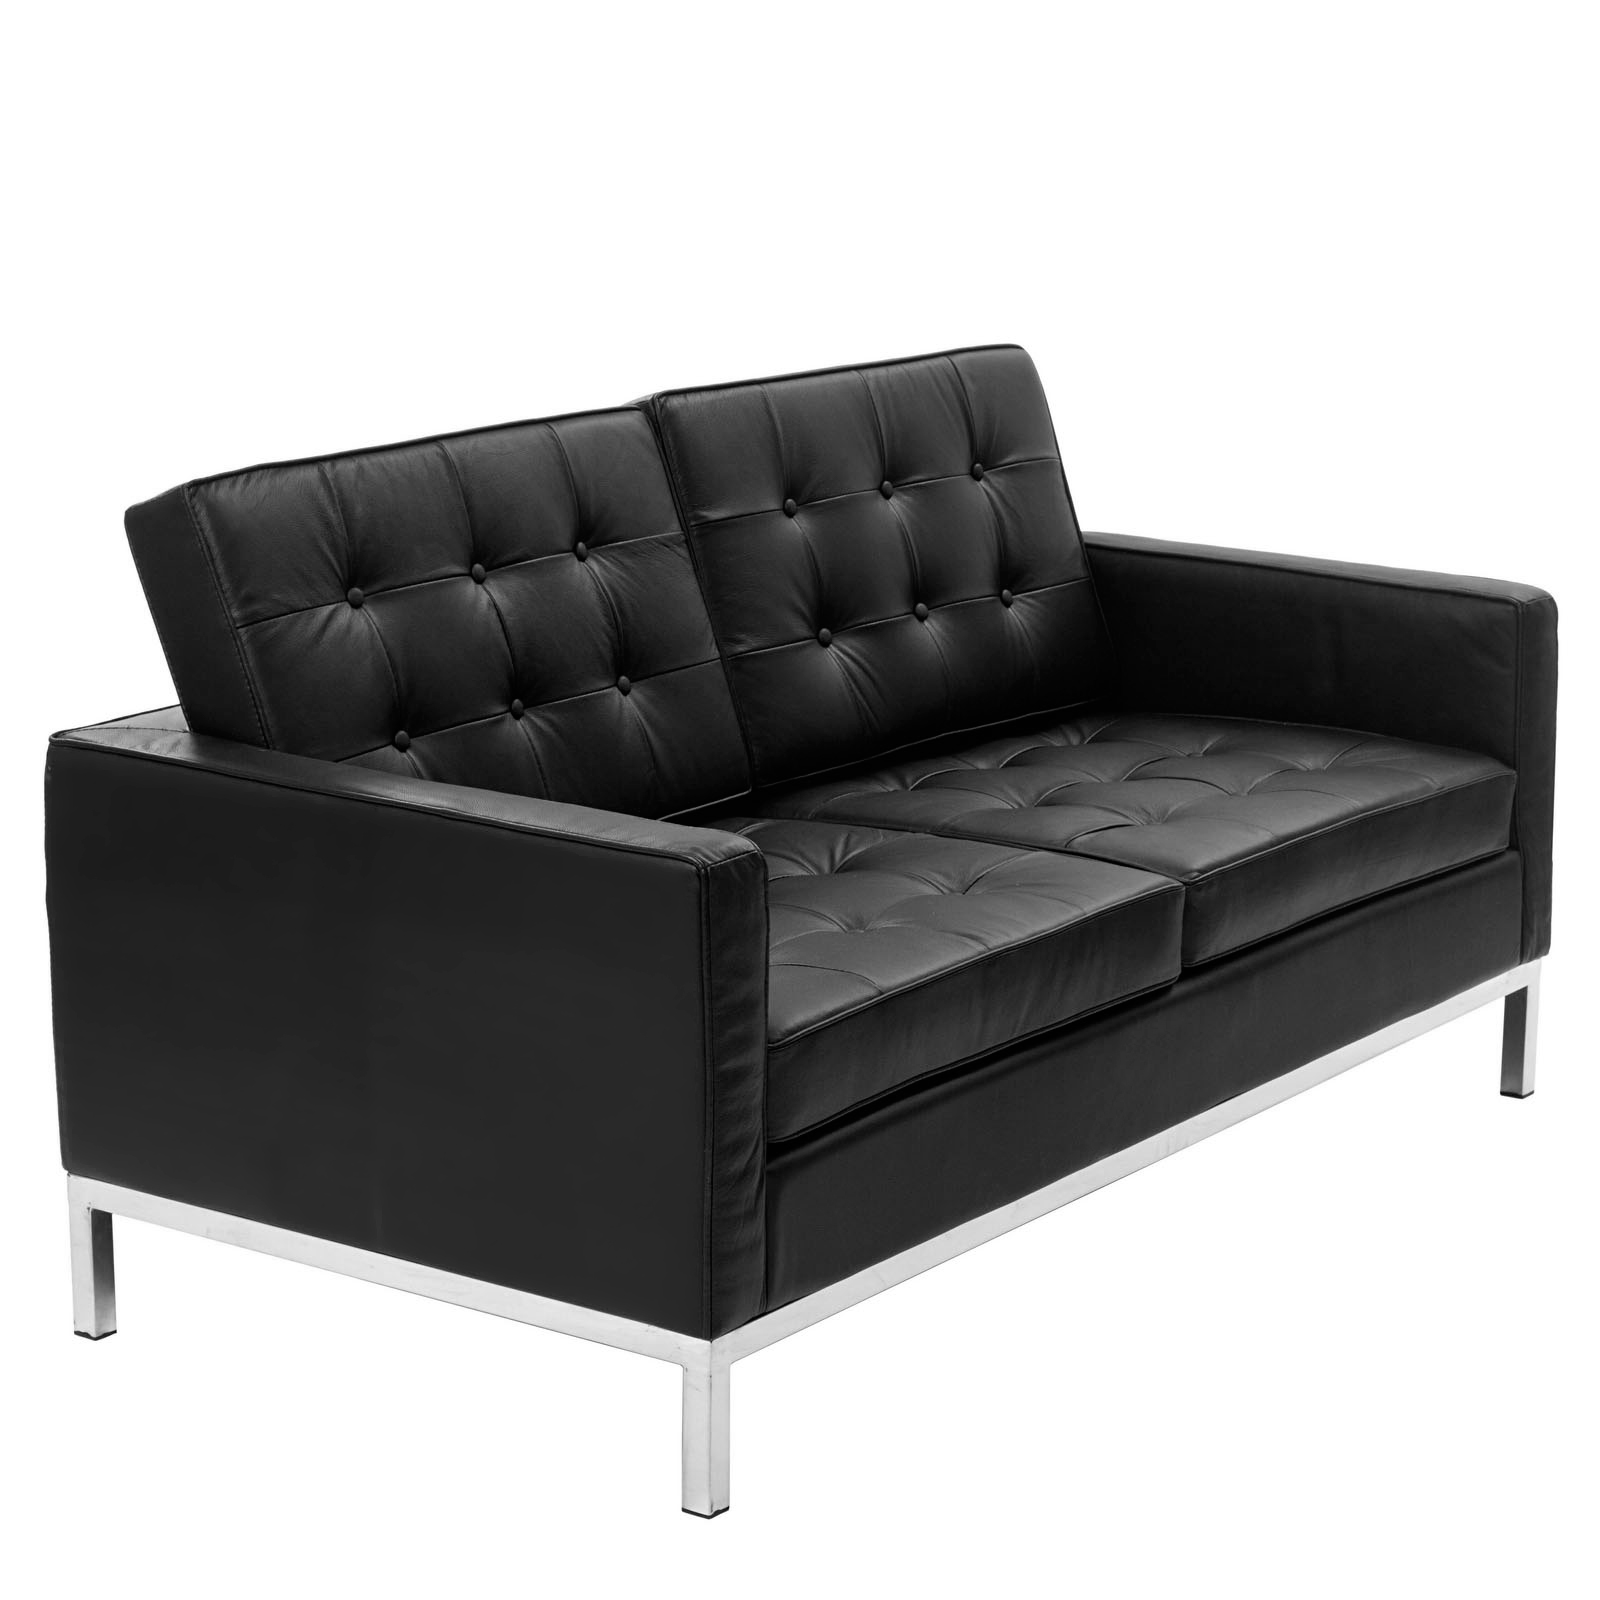 Wedding Loveseat: Florence Knoll Loveseat Rentals